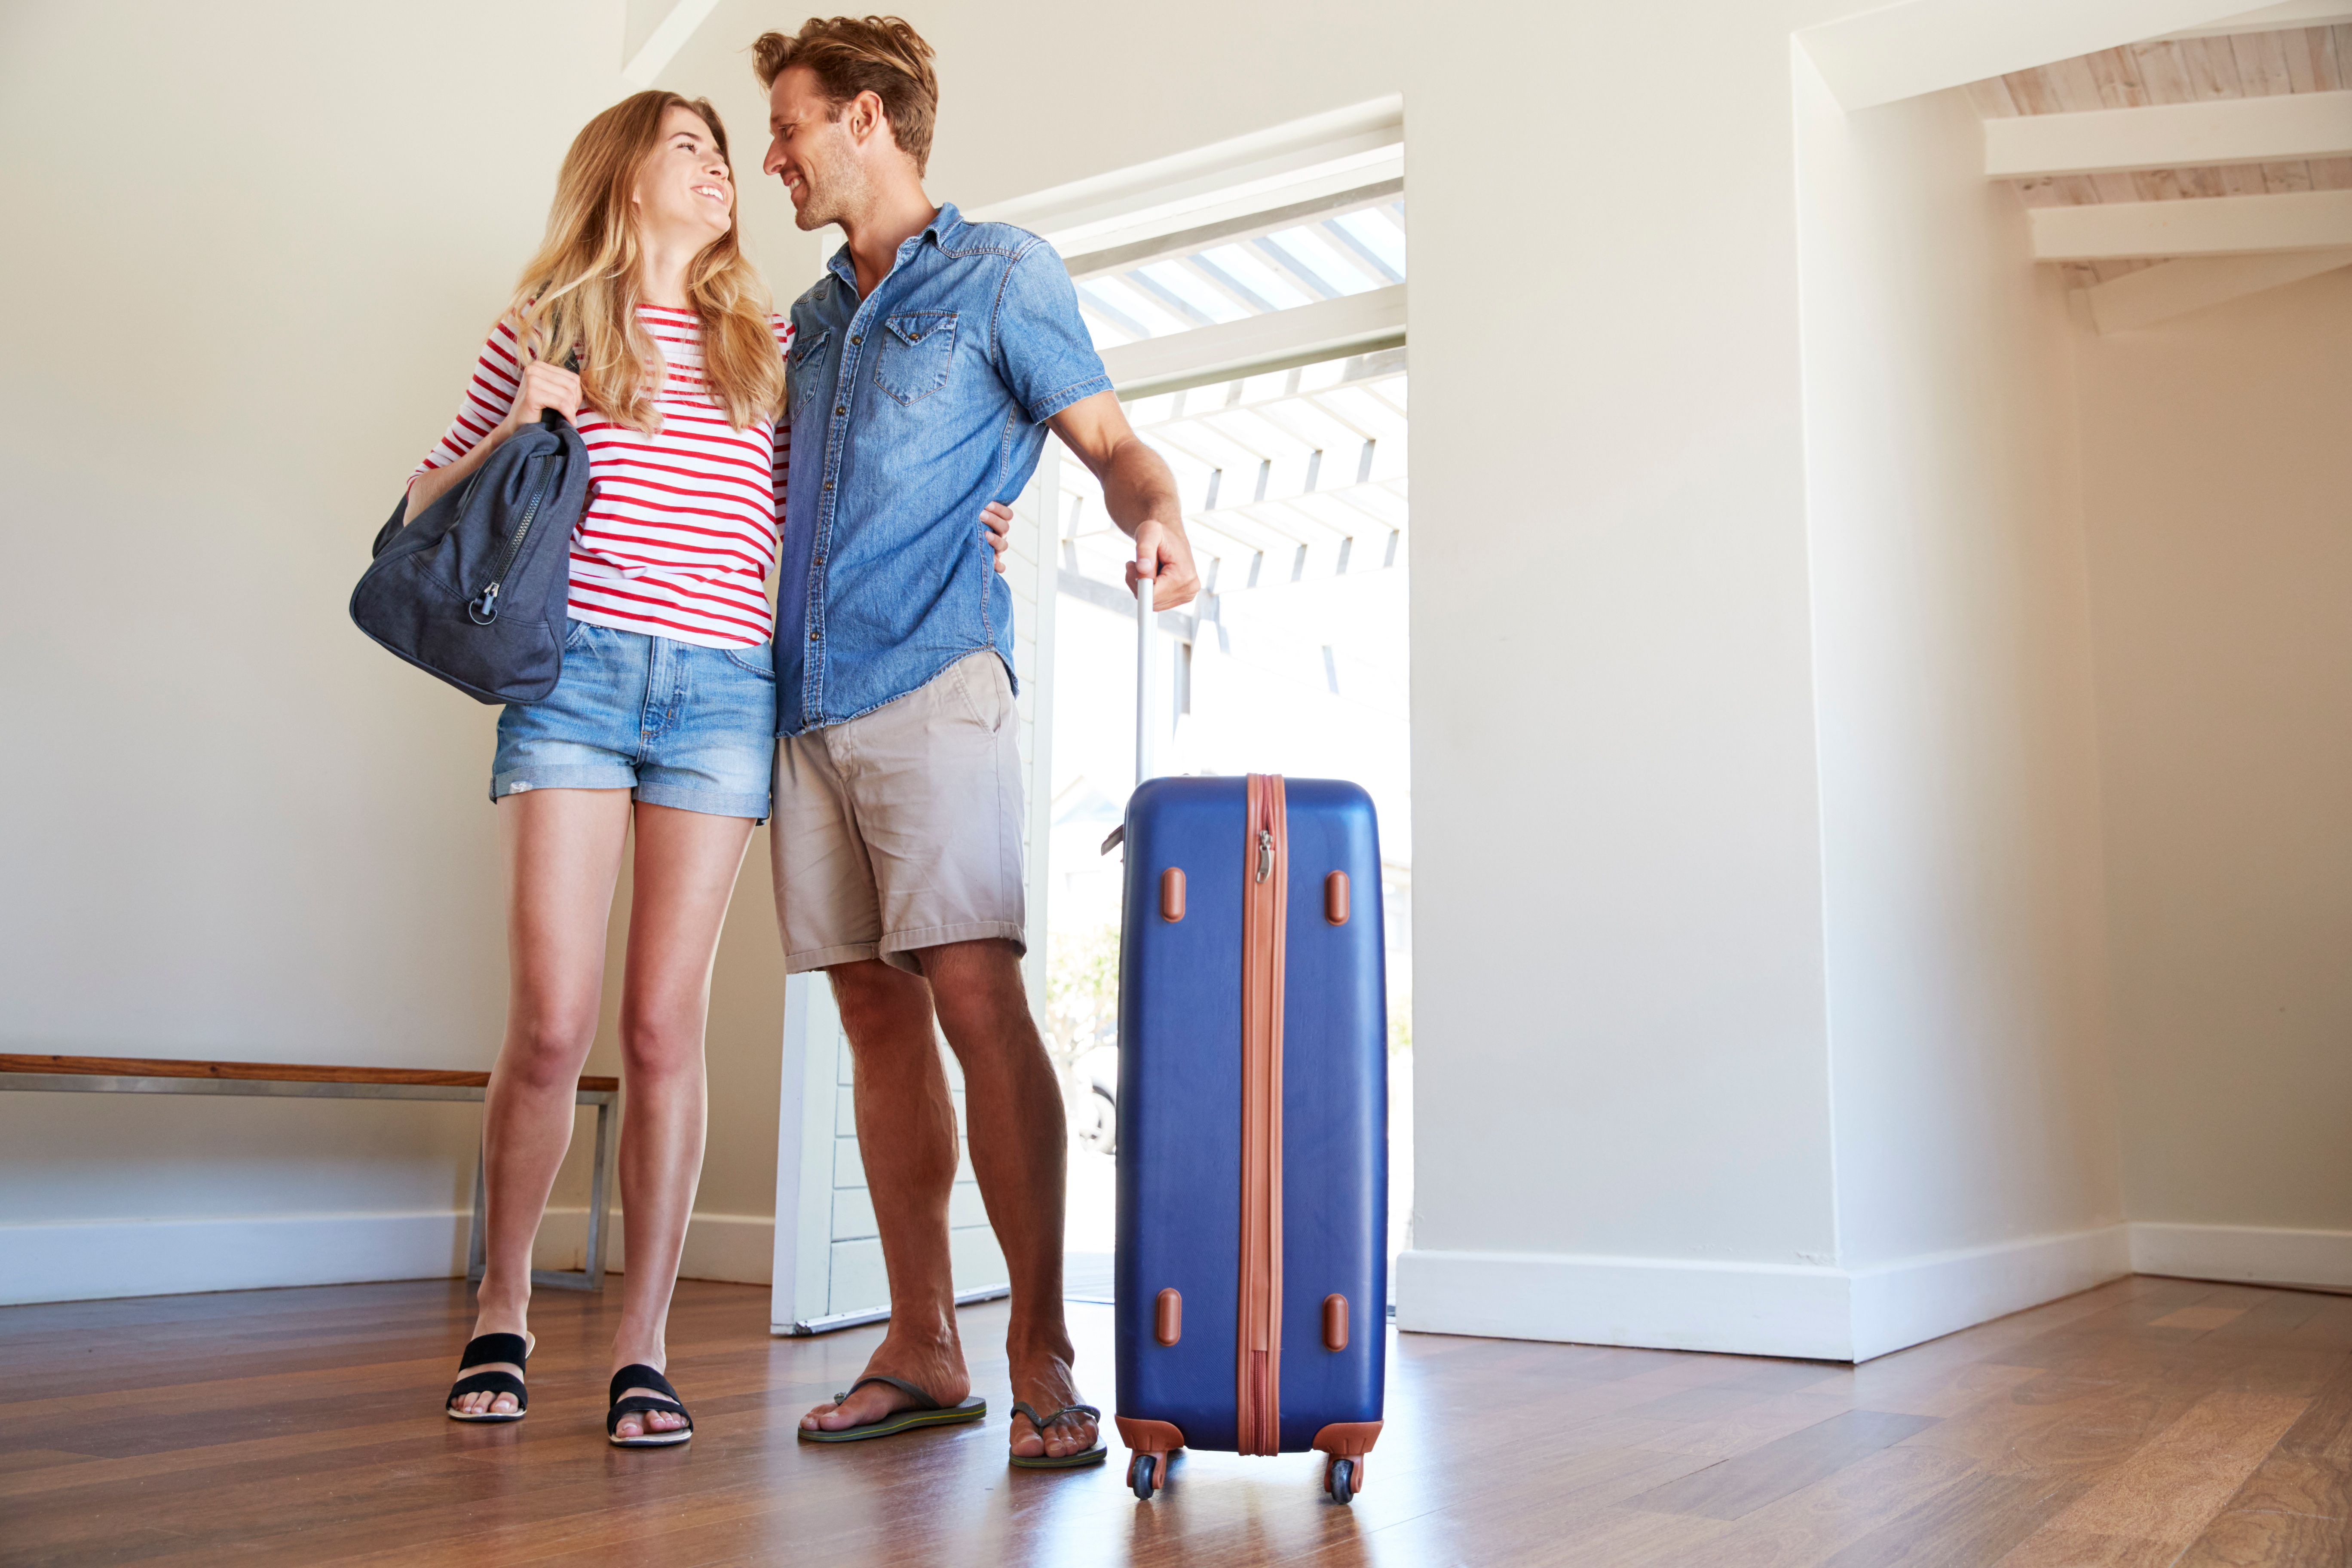 A couple arriving at a new house